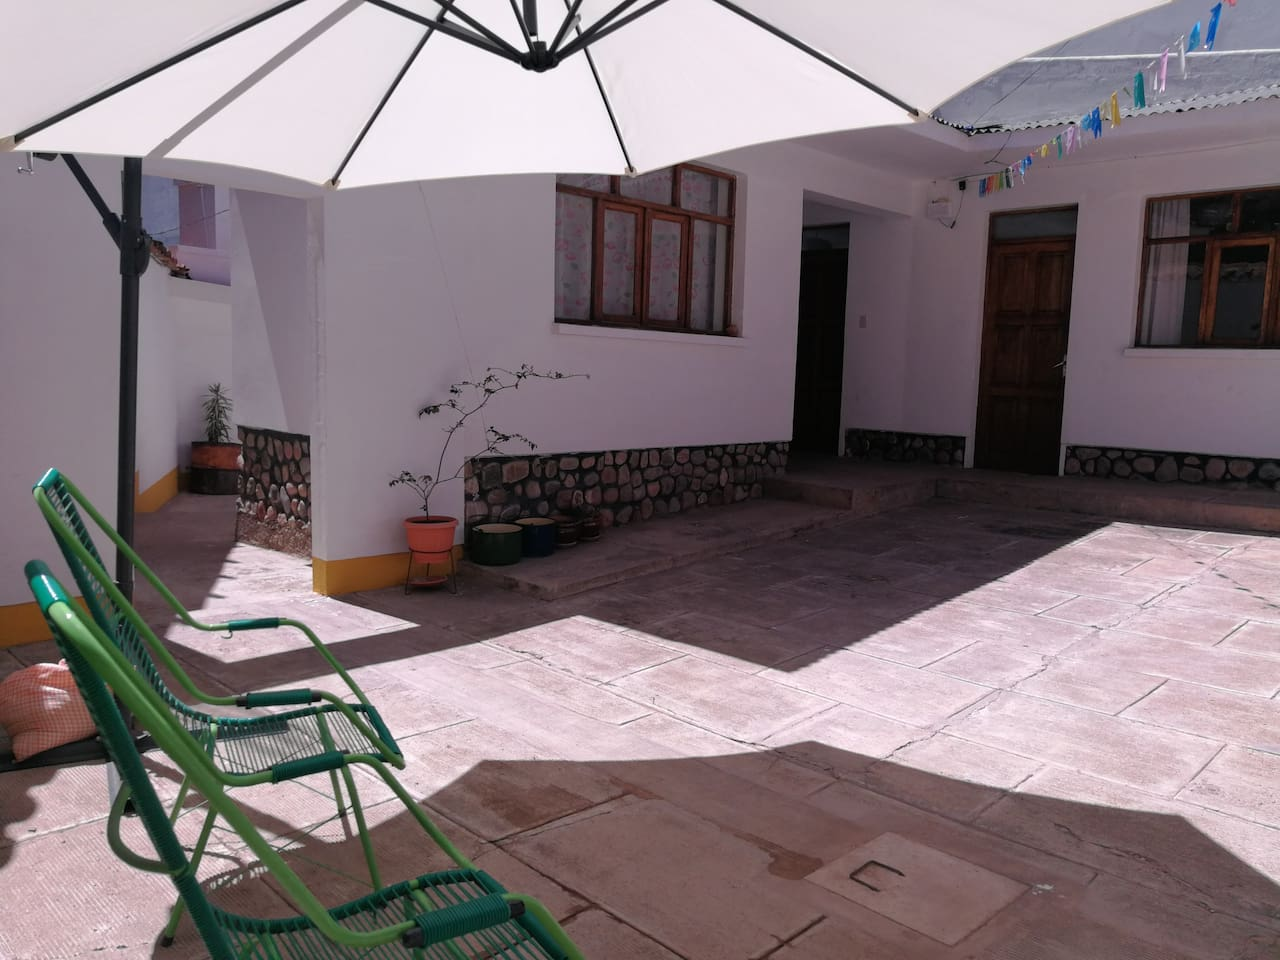 General view of patio/ Vista general del patio